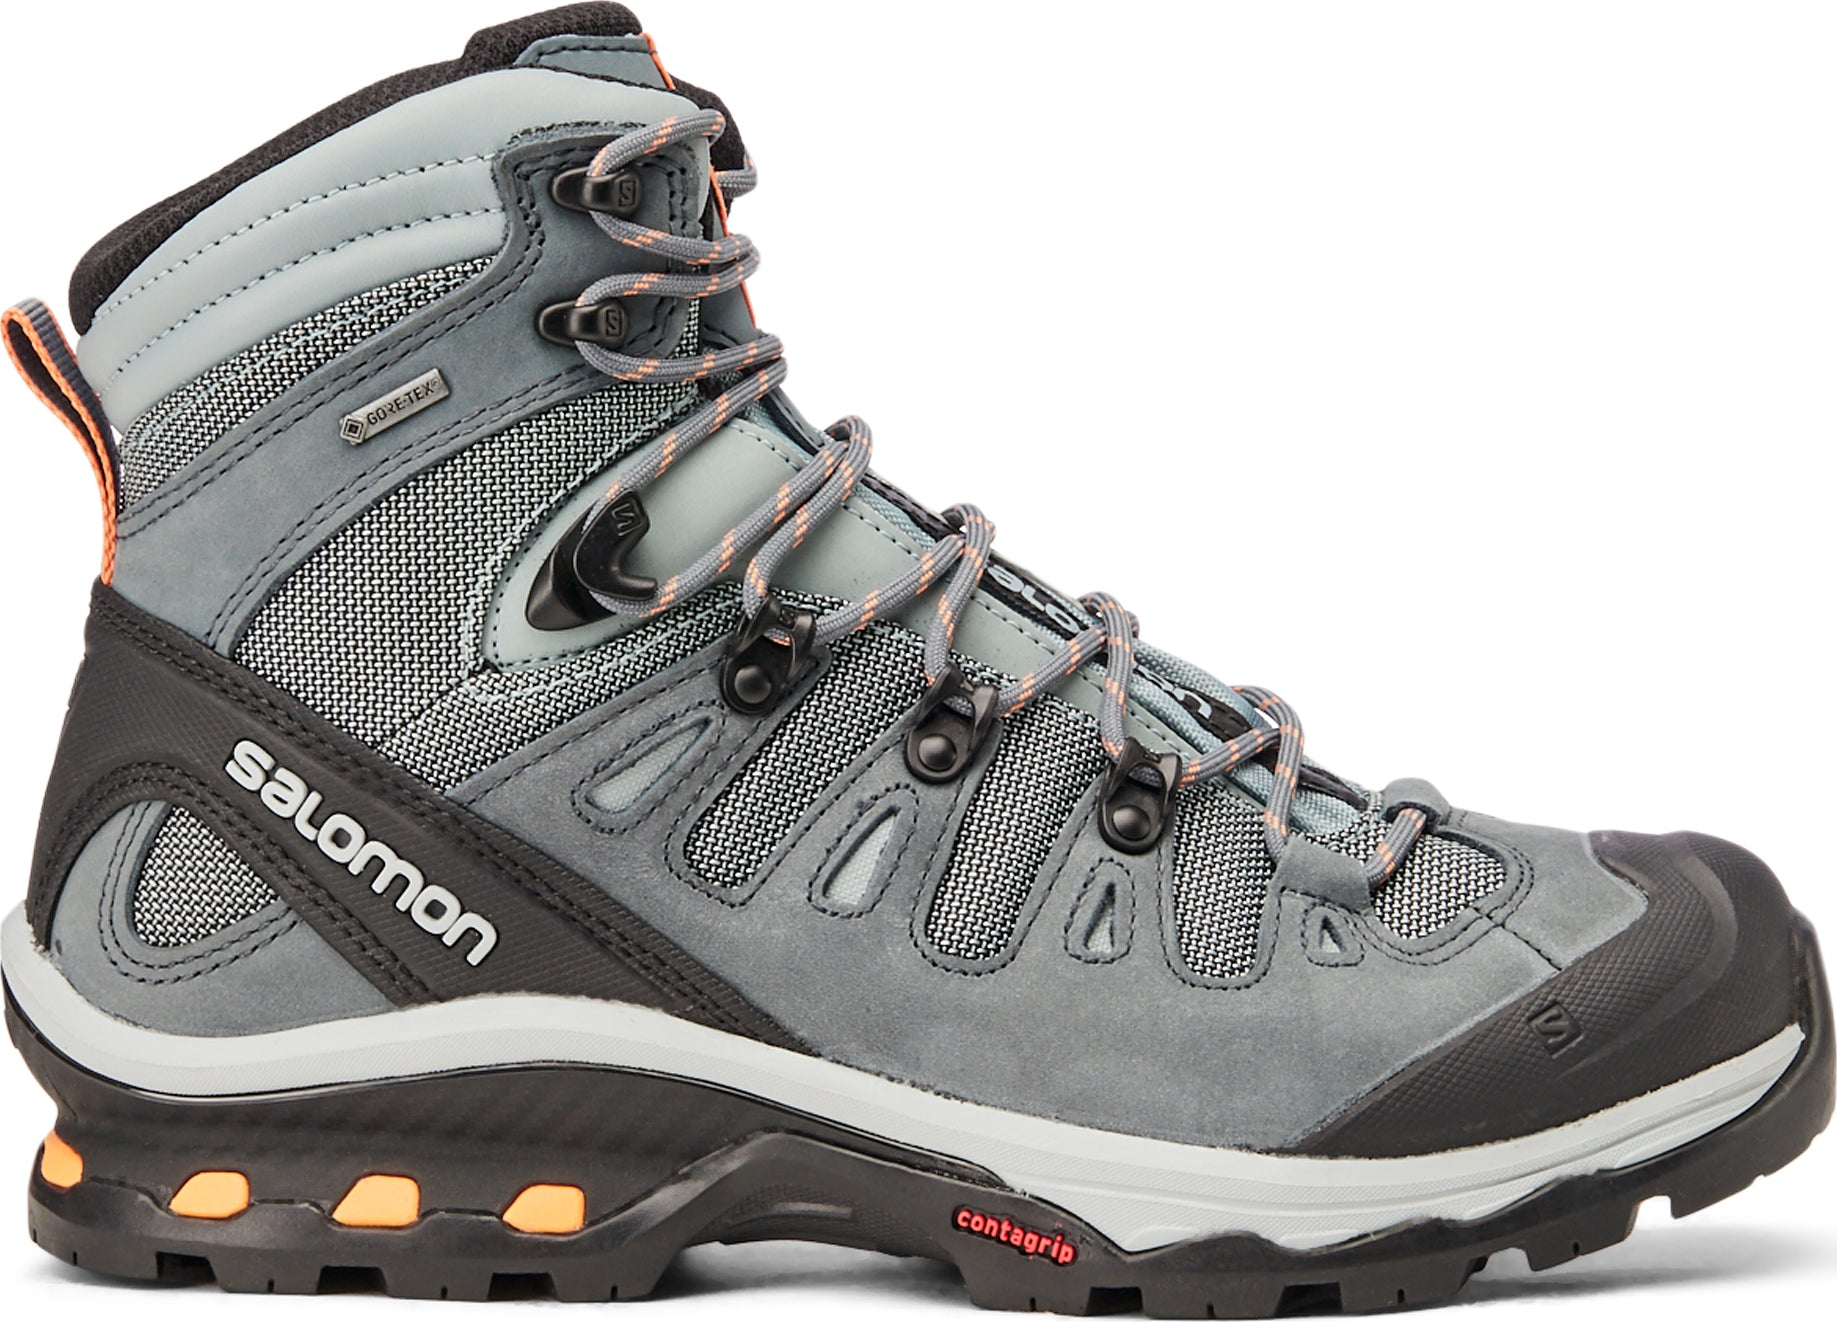 salomon outline mid gtx womens hiking boots 6pm